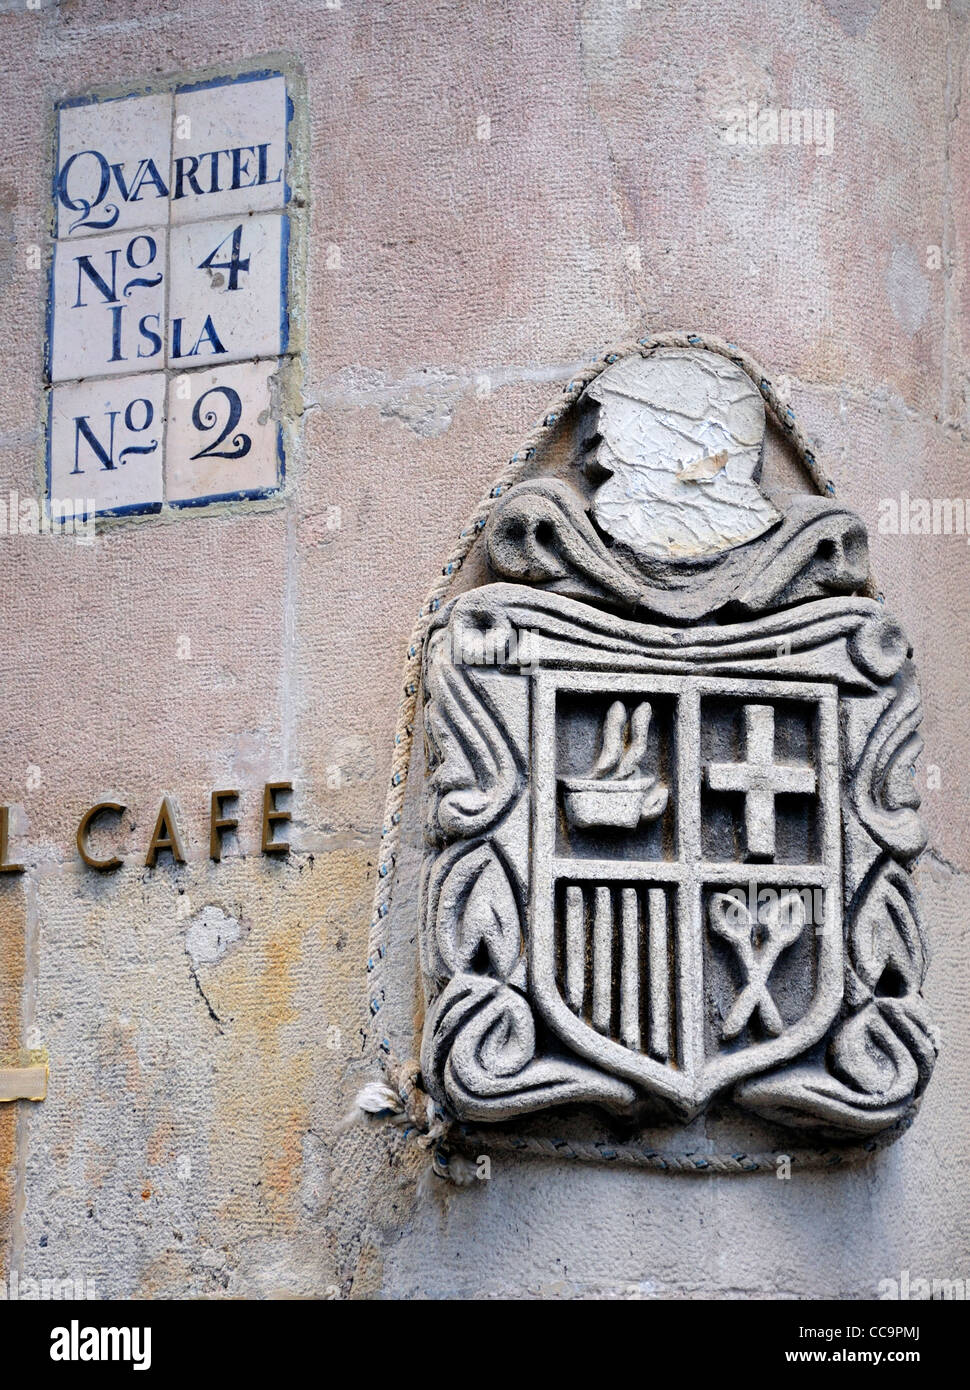 Barcelona, Spain. Wall detail in Carrer del Call. Carved stone, house number and cafe sign Stock Photo